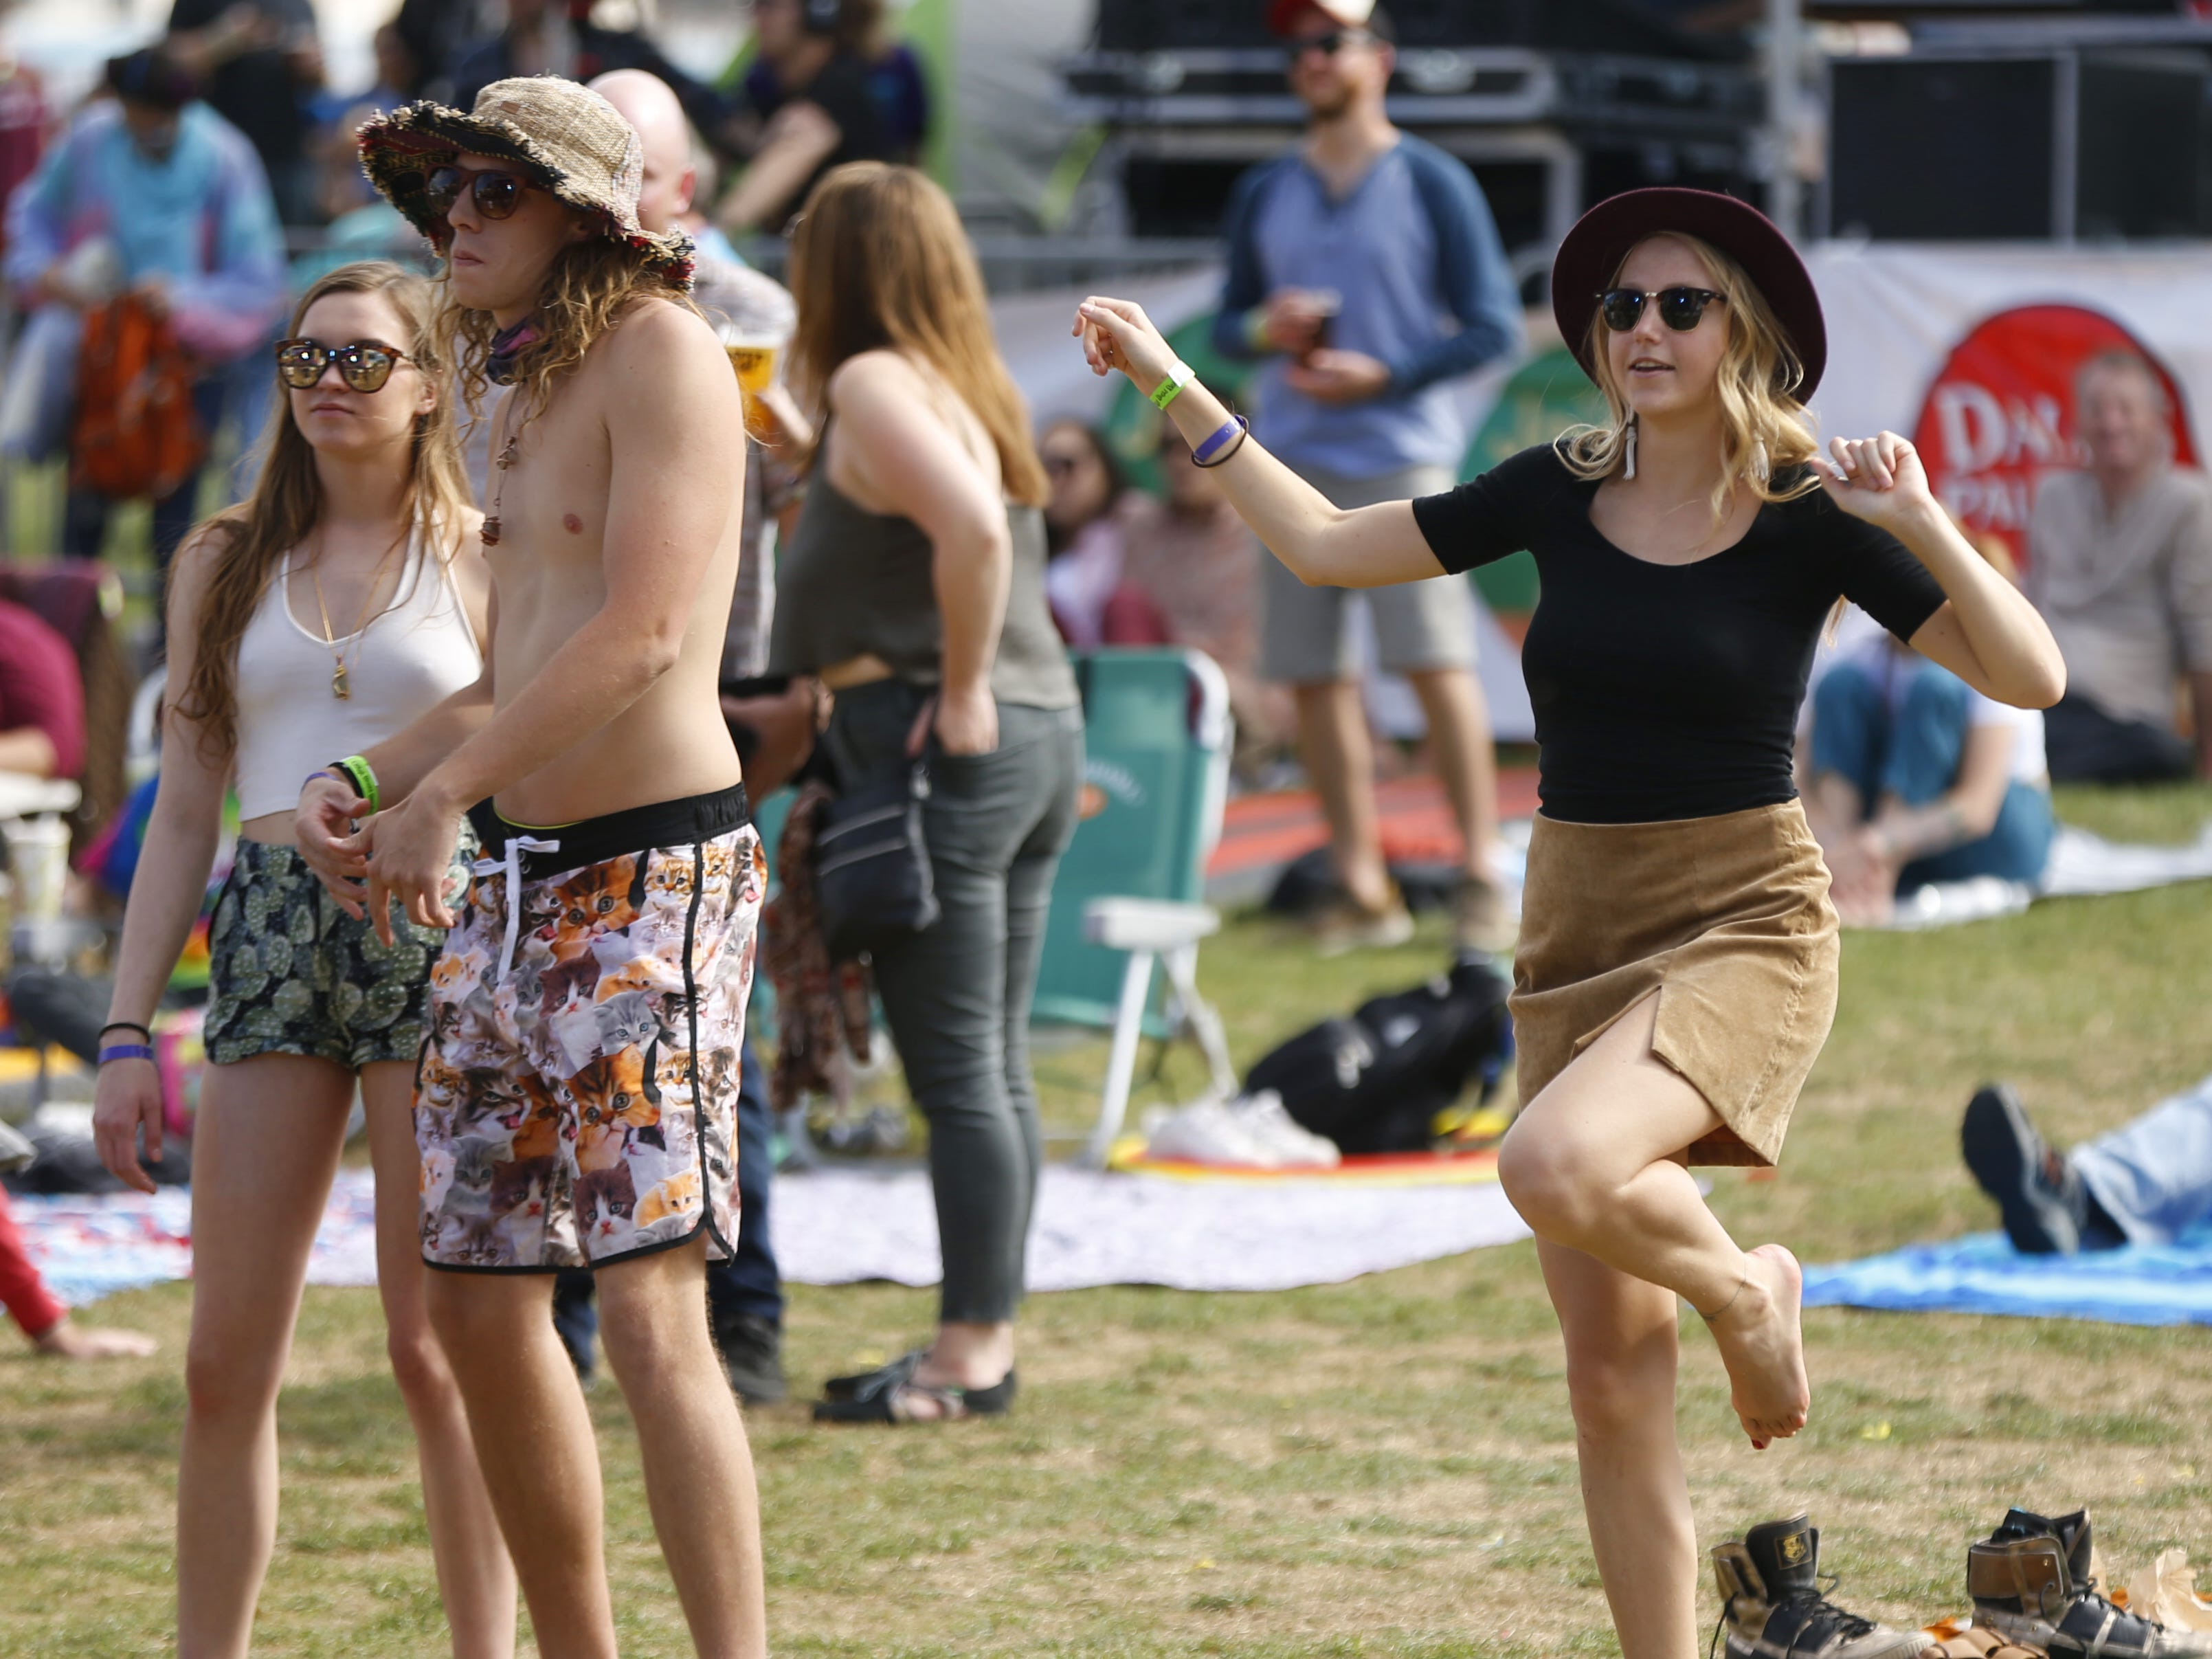 Fans dance to Phoenix Afrobeat Orchestra's music during the McDowell Mountain Music Festival in Phoenix, Ariz. on March 2, 2019.